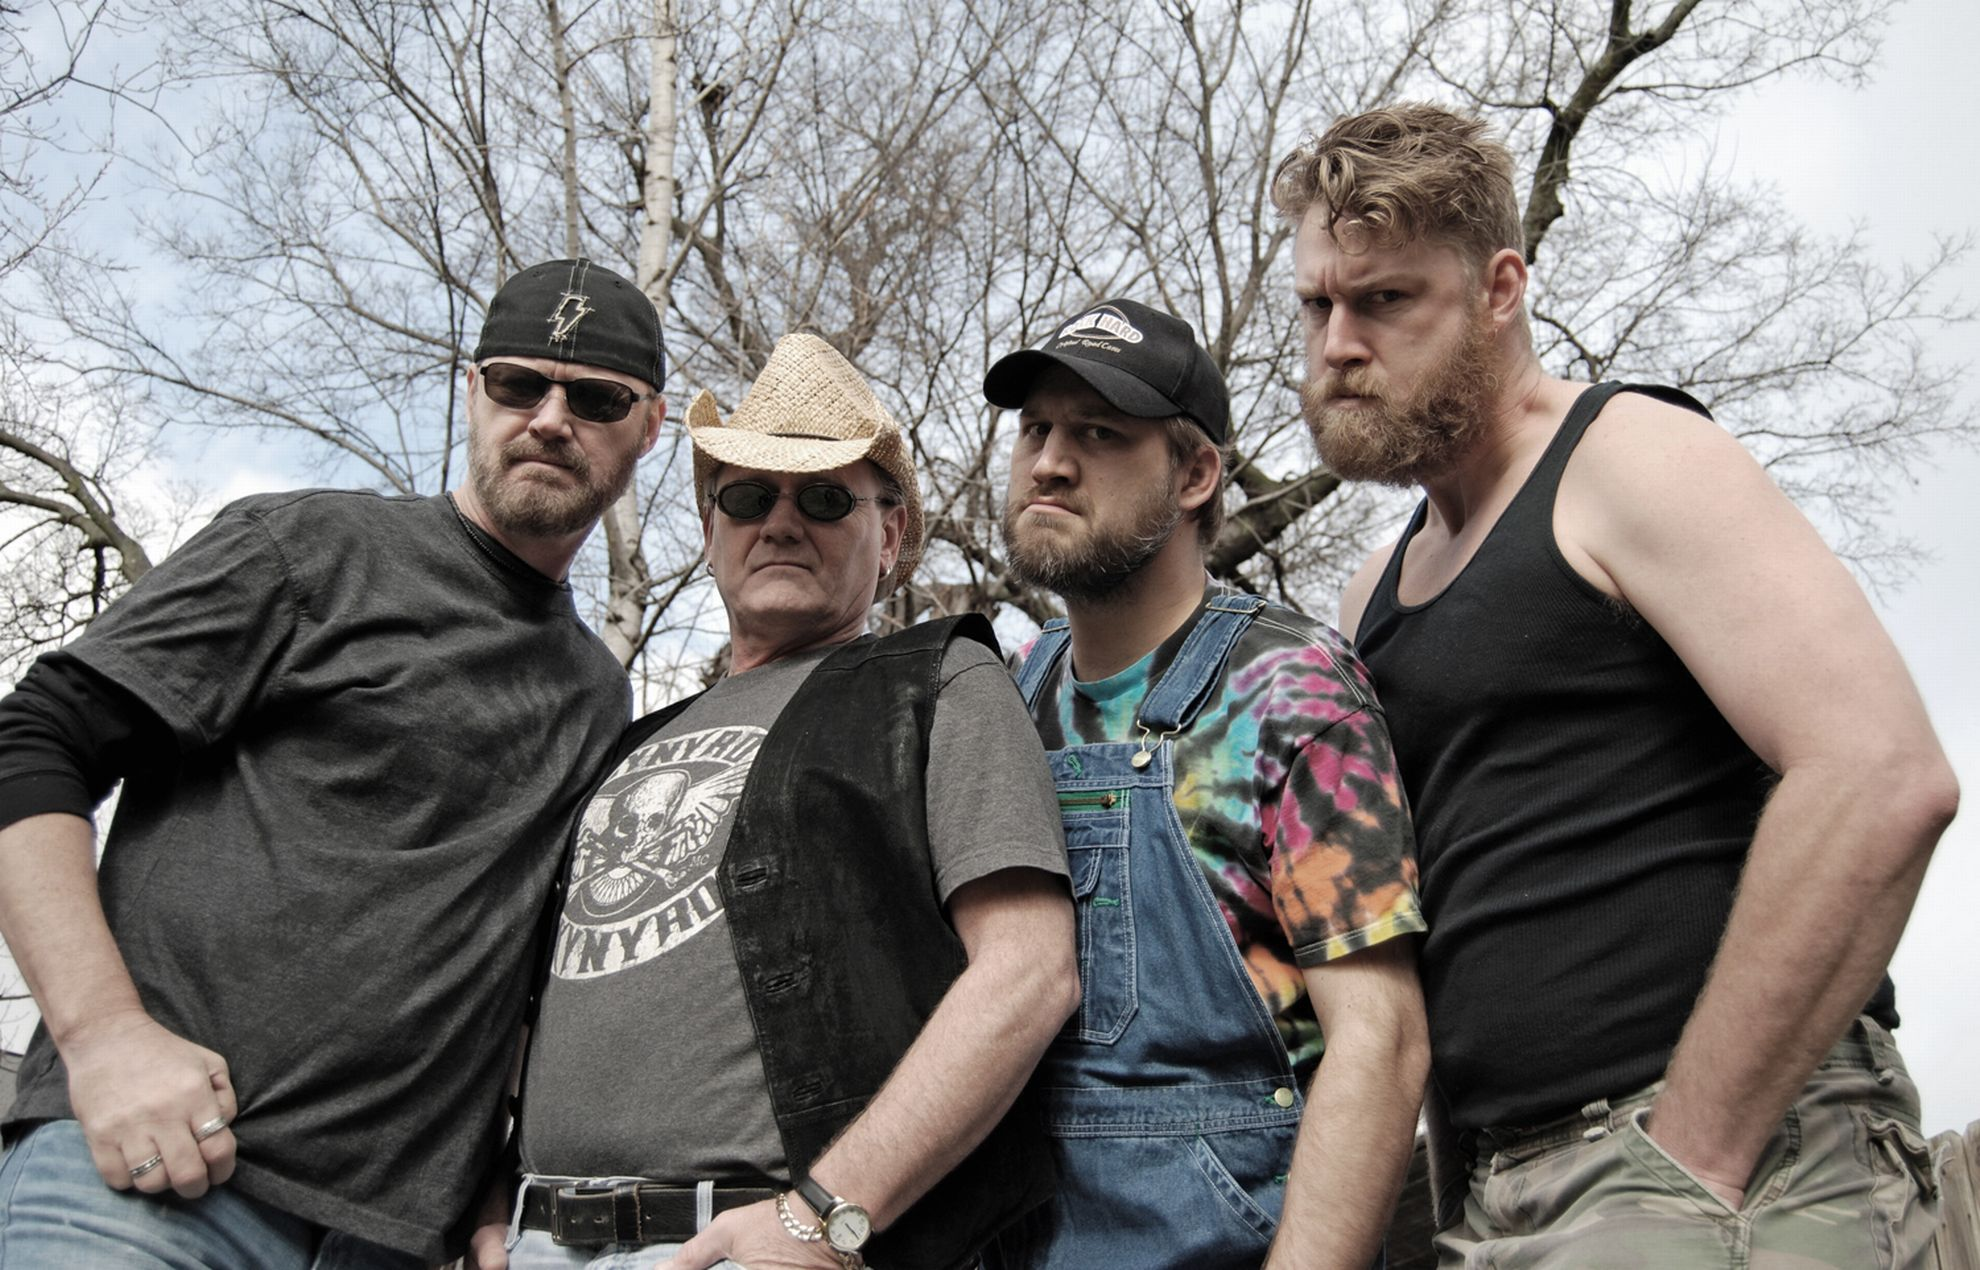 Hayseed Dixie: Det amerikanske bandet ga ut albumet «Free Your Mind and Your Grass Will Follow» i april i år. Foto: pressefoto.